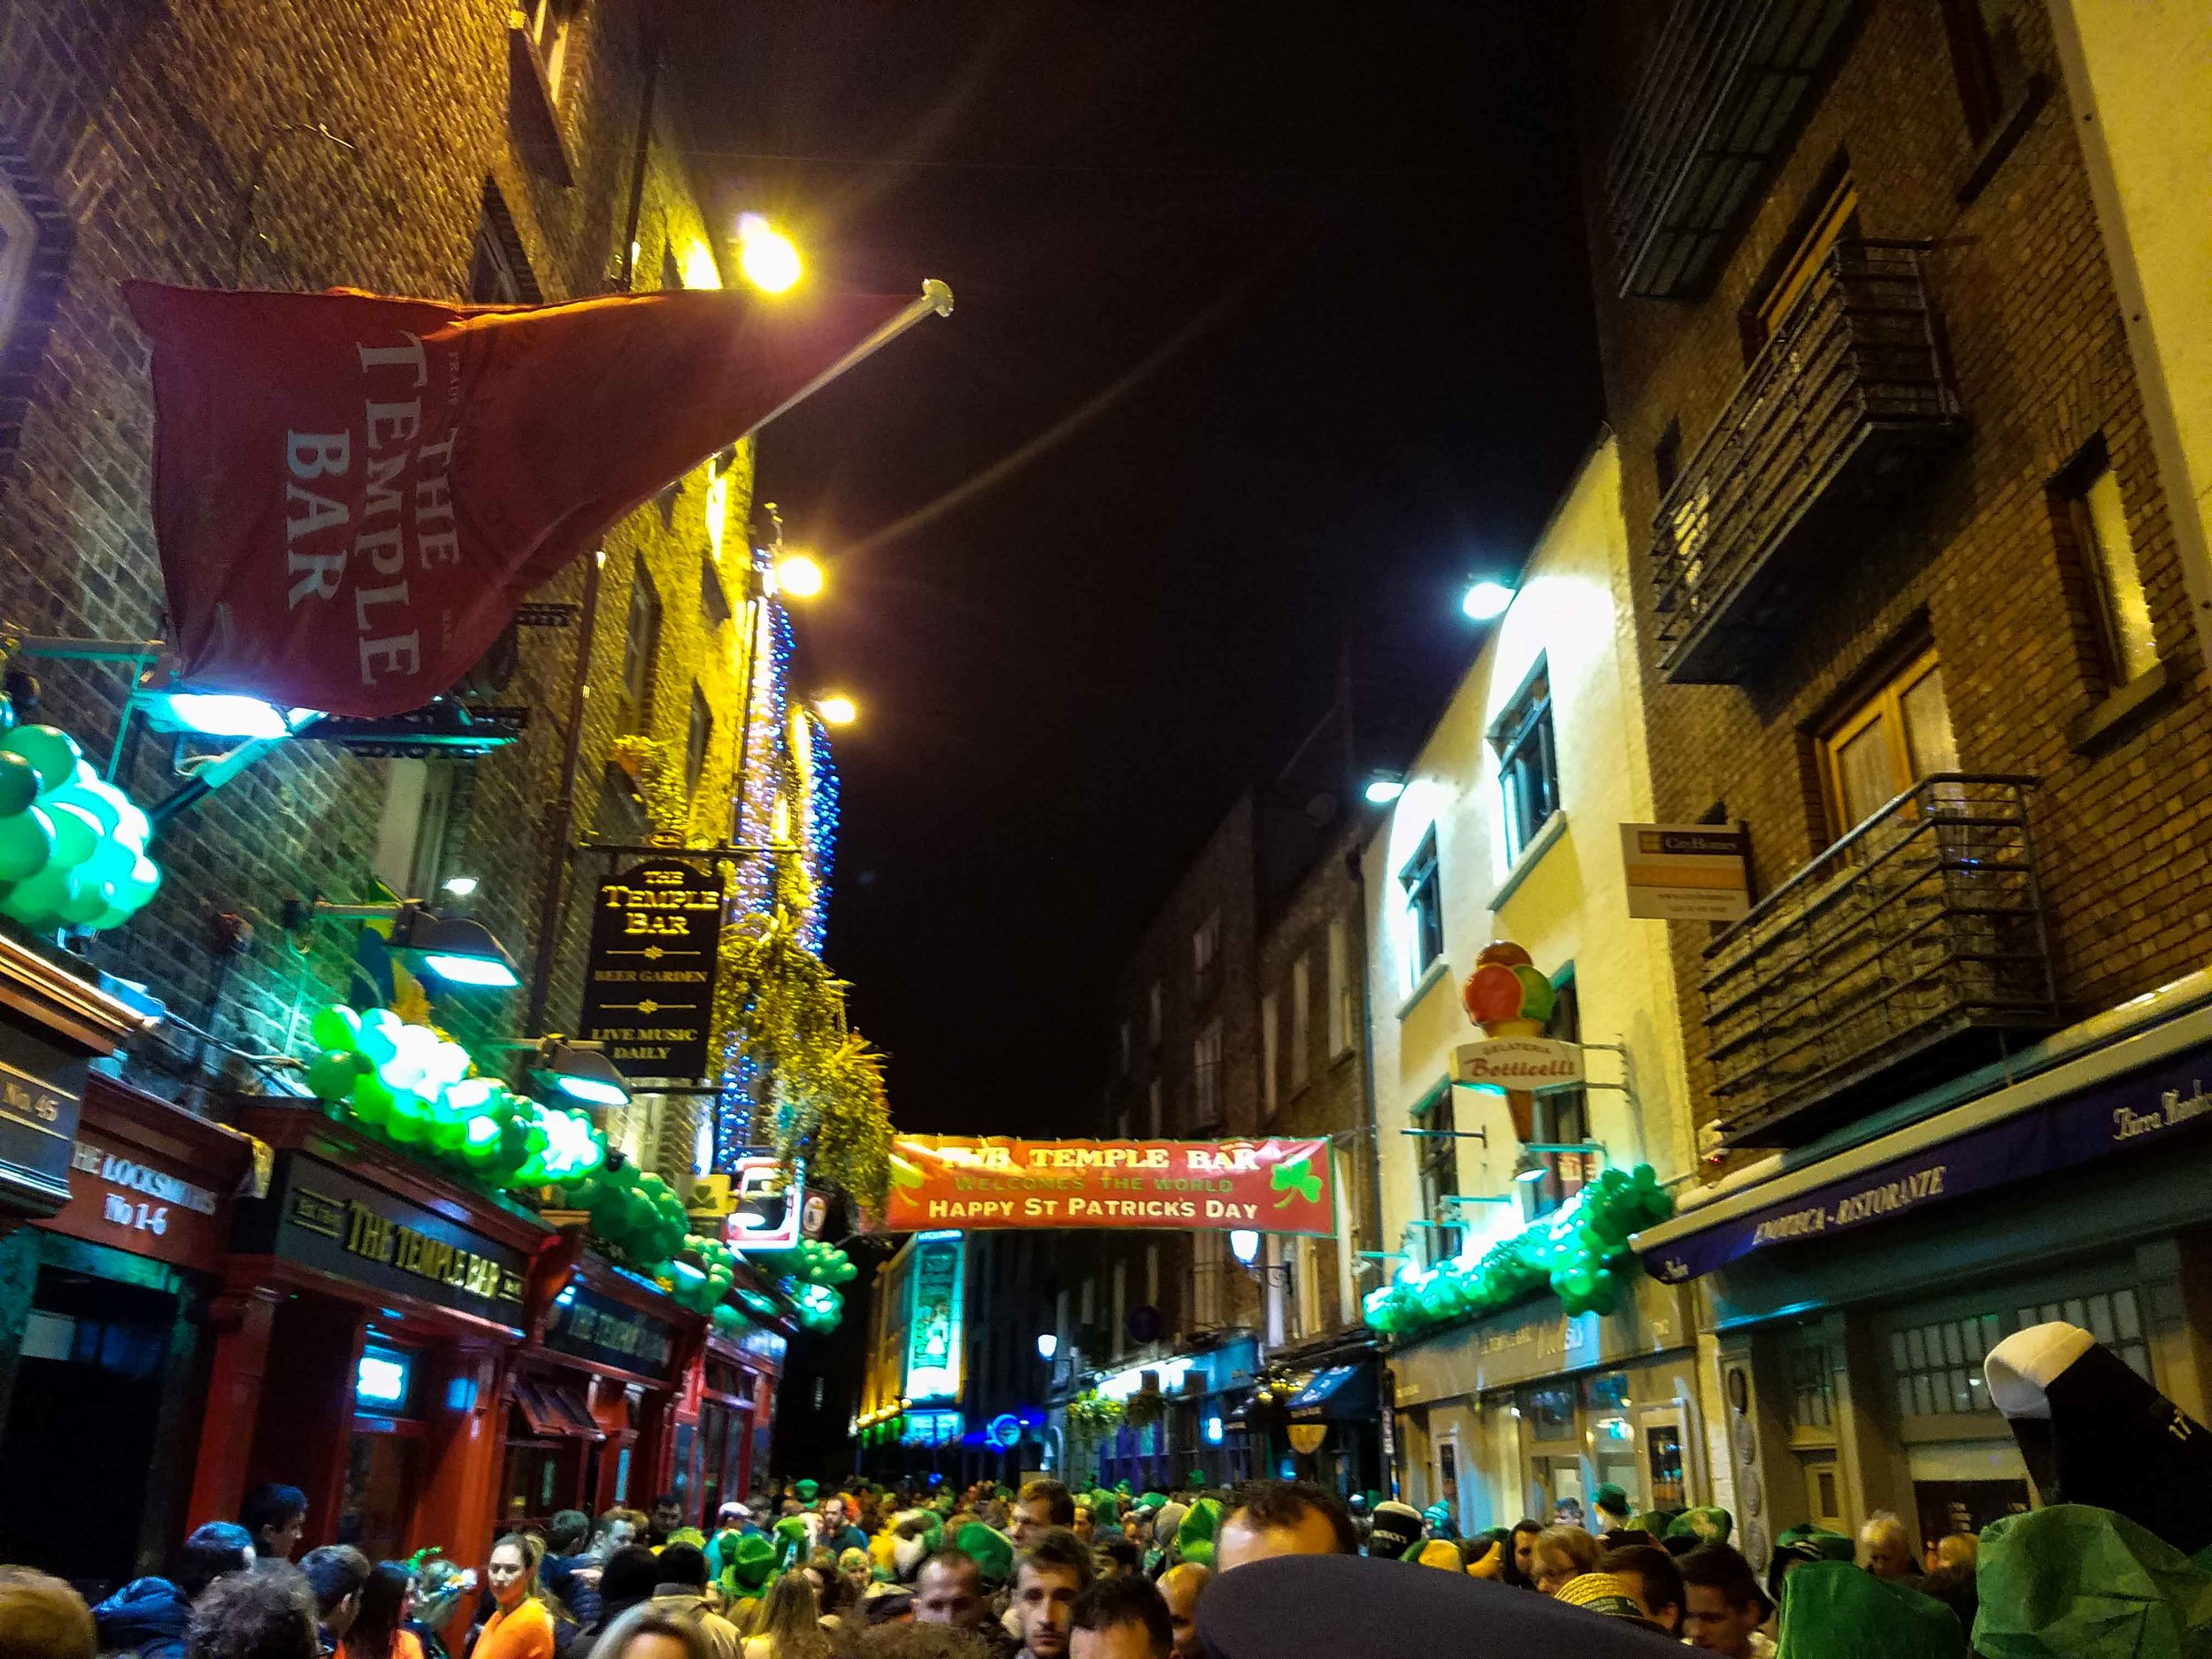 temple-bar-st-patricks-day